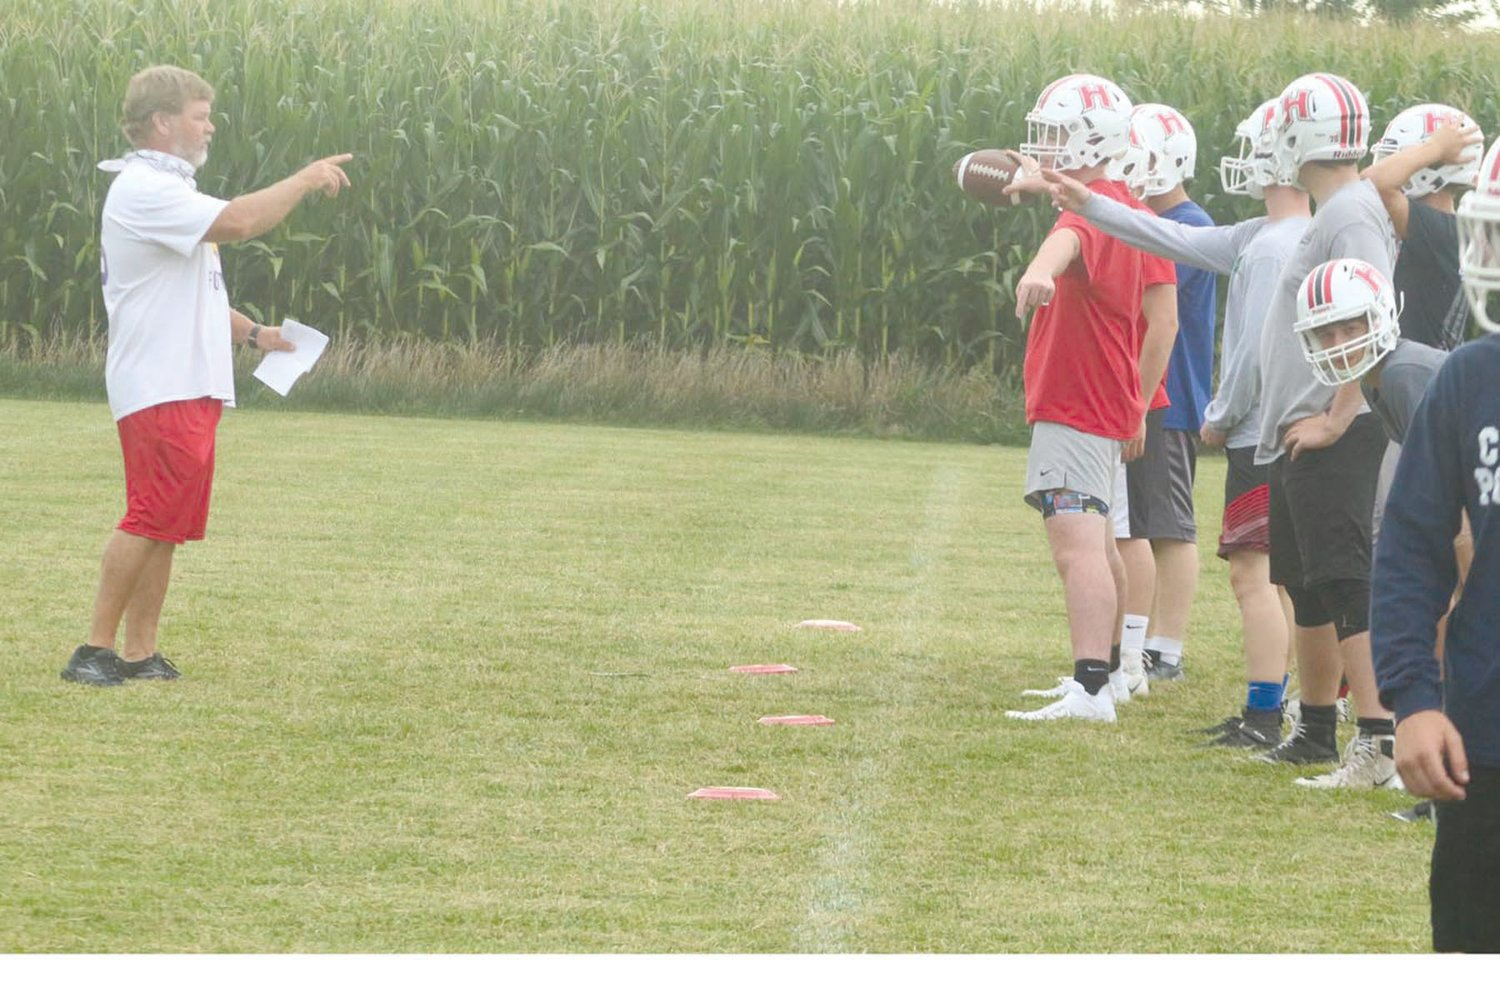 Highland coach Joe Donovan instructs his first offensive unit before running a play in practice Monday.